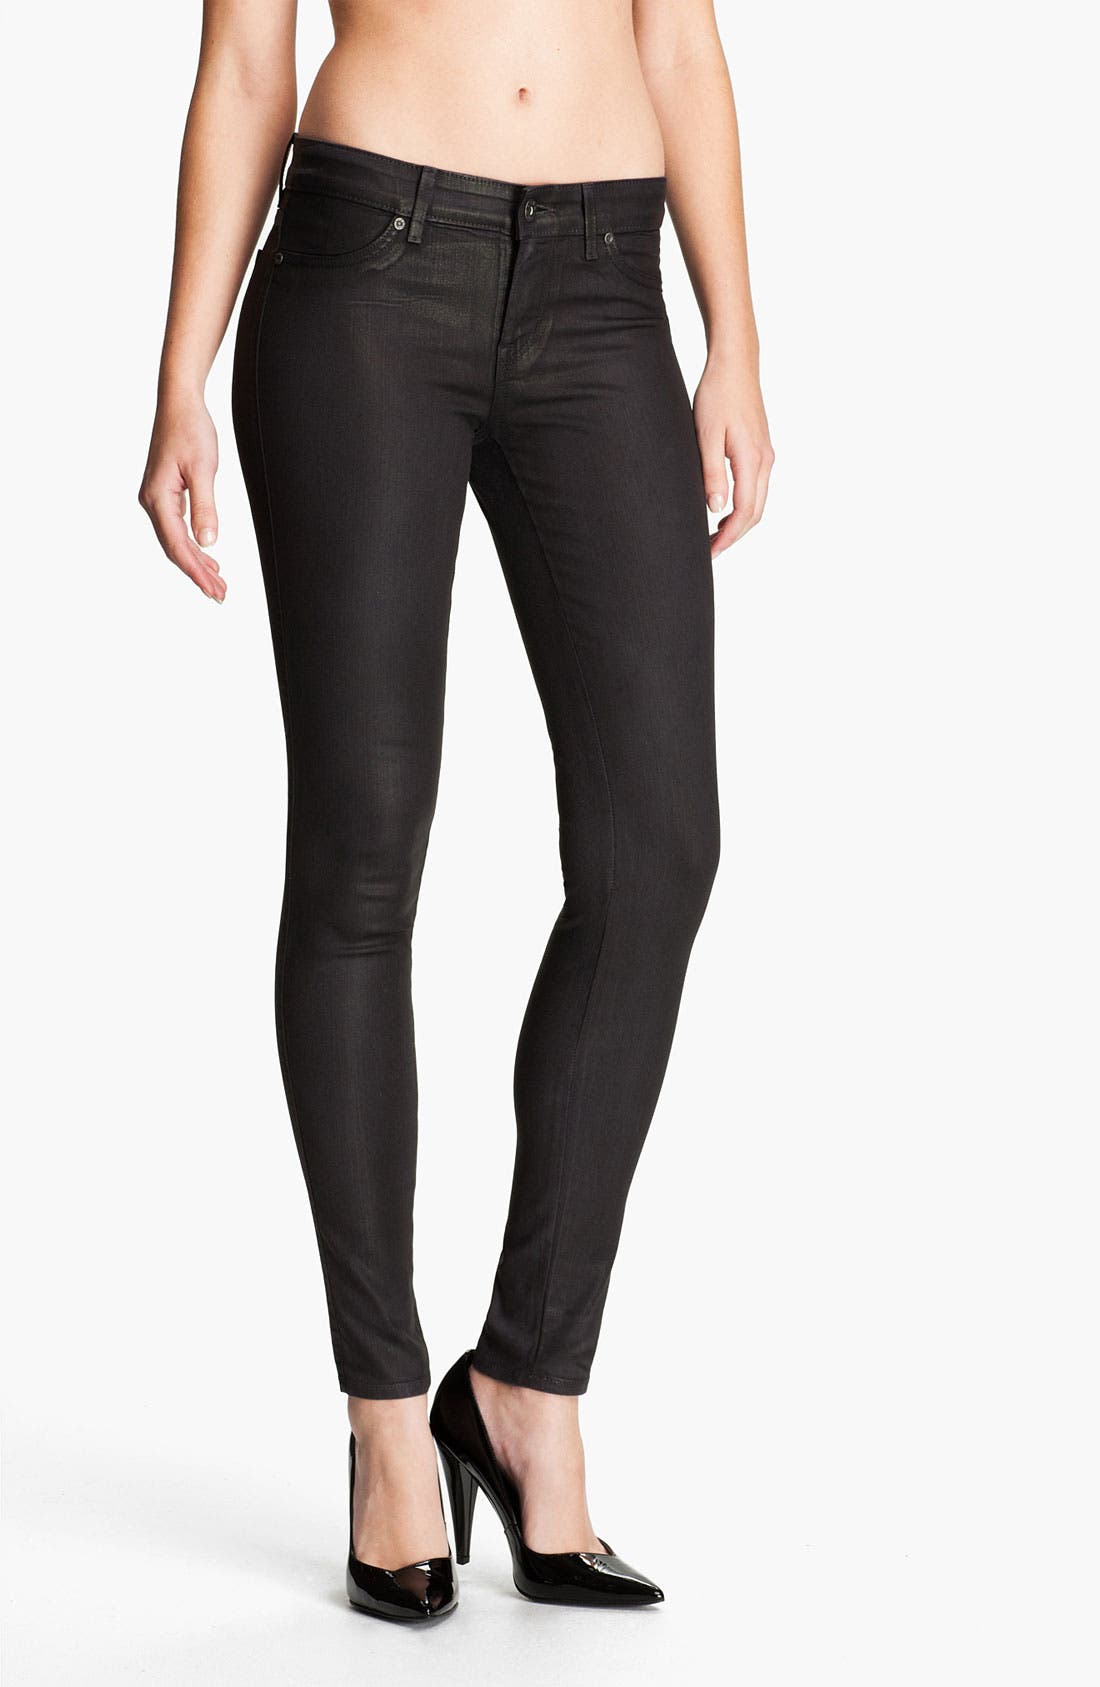 Main Image - Rich & Skinny 'Legacy Leather' Faux Leather Skinny Jeans (Owl)